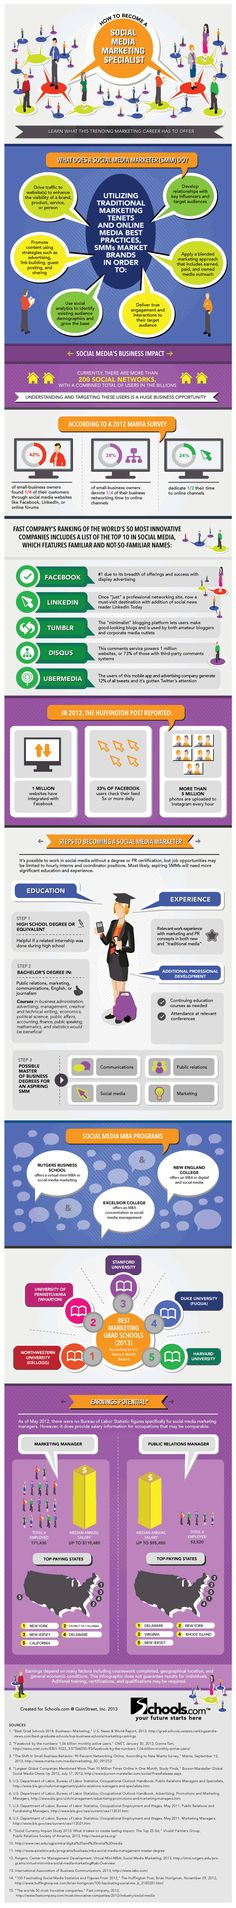 How To Become A Social Media Marketer [INFOGRAPHIC]